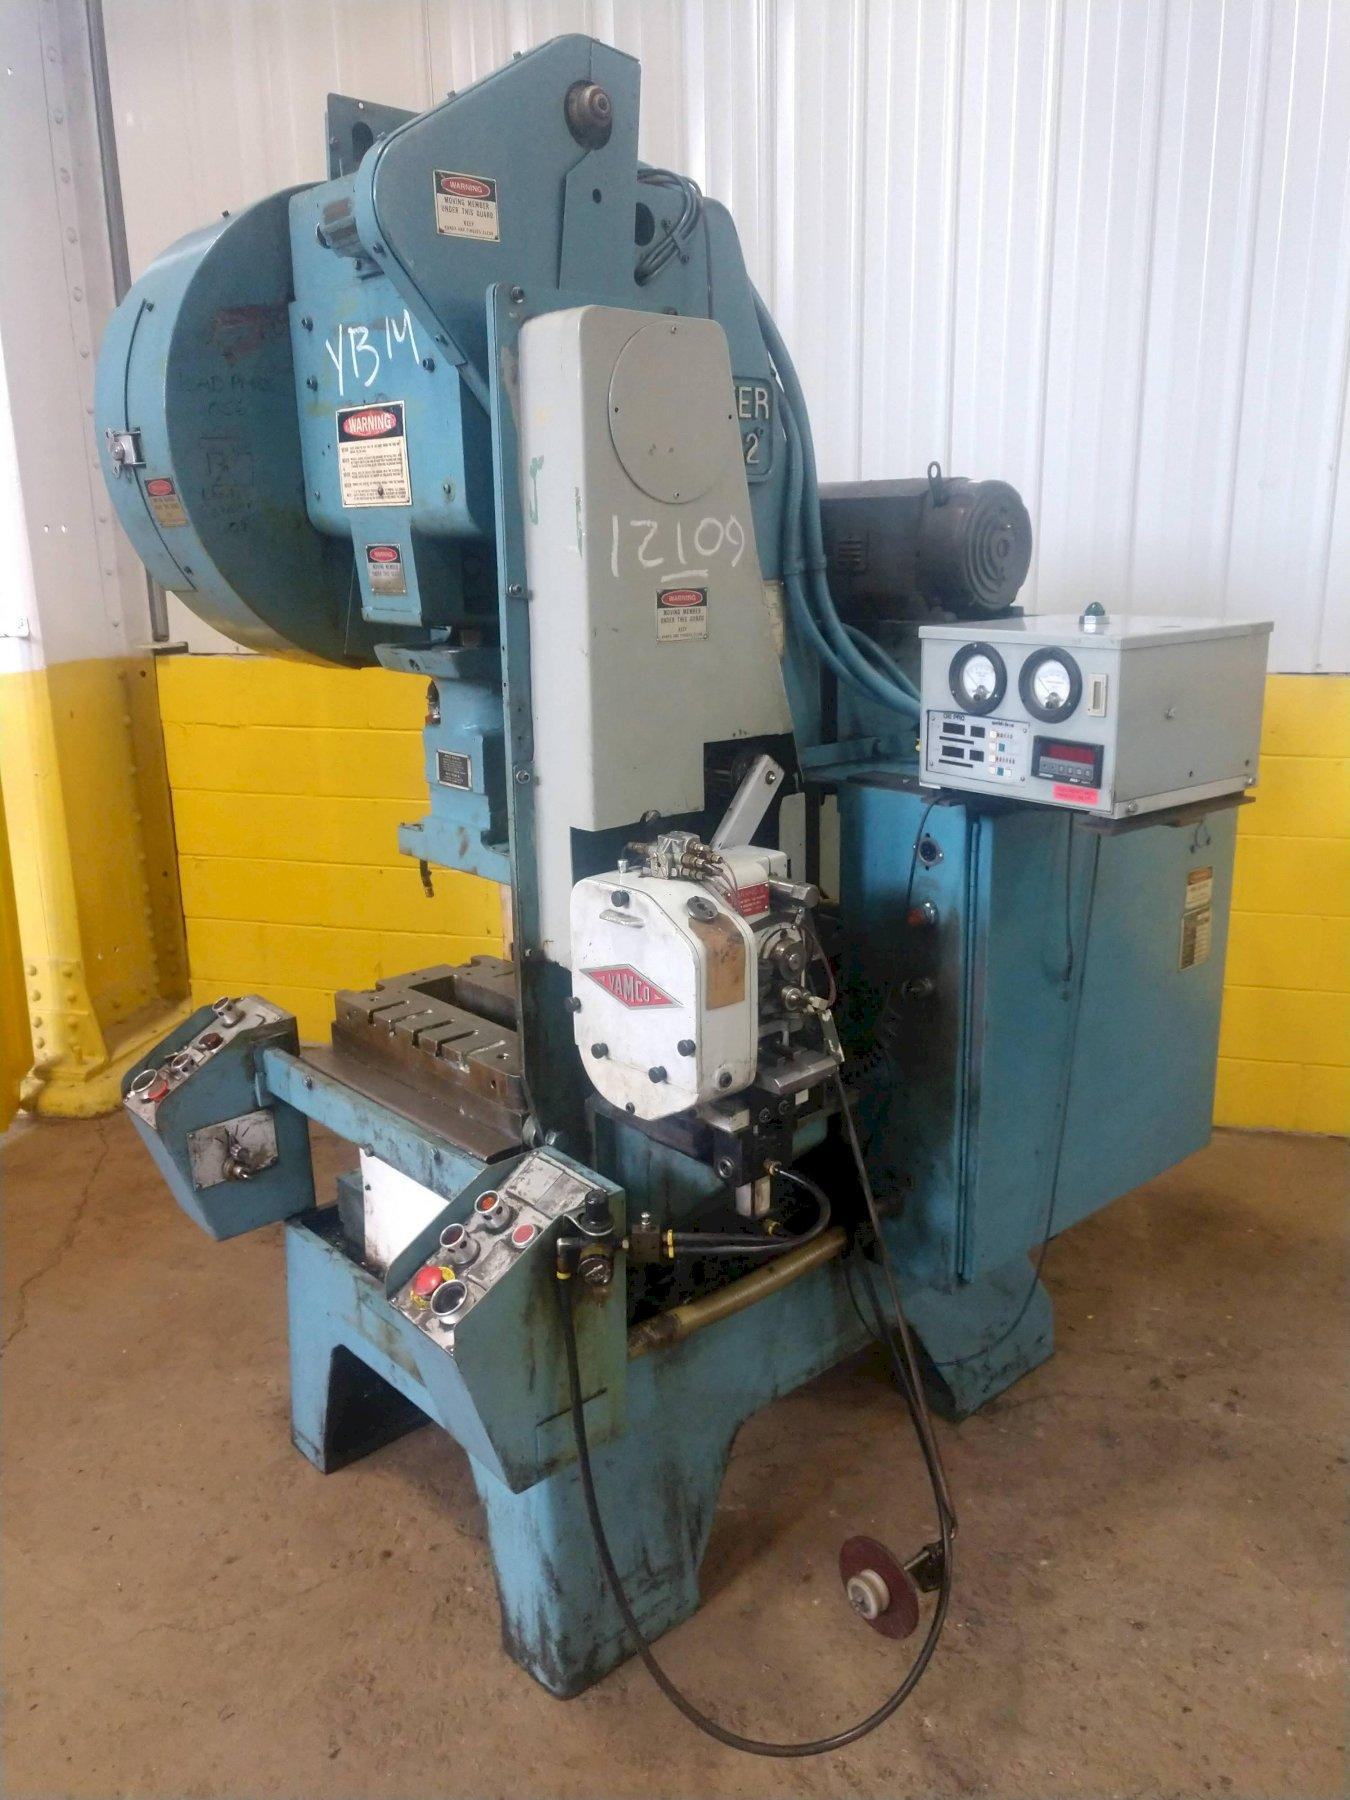 22 TON MINSTER B1-22 HI SPEED FIXED BASE PRESS: STOCK #12109